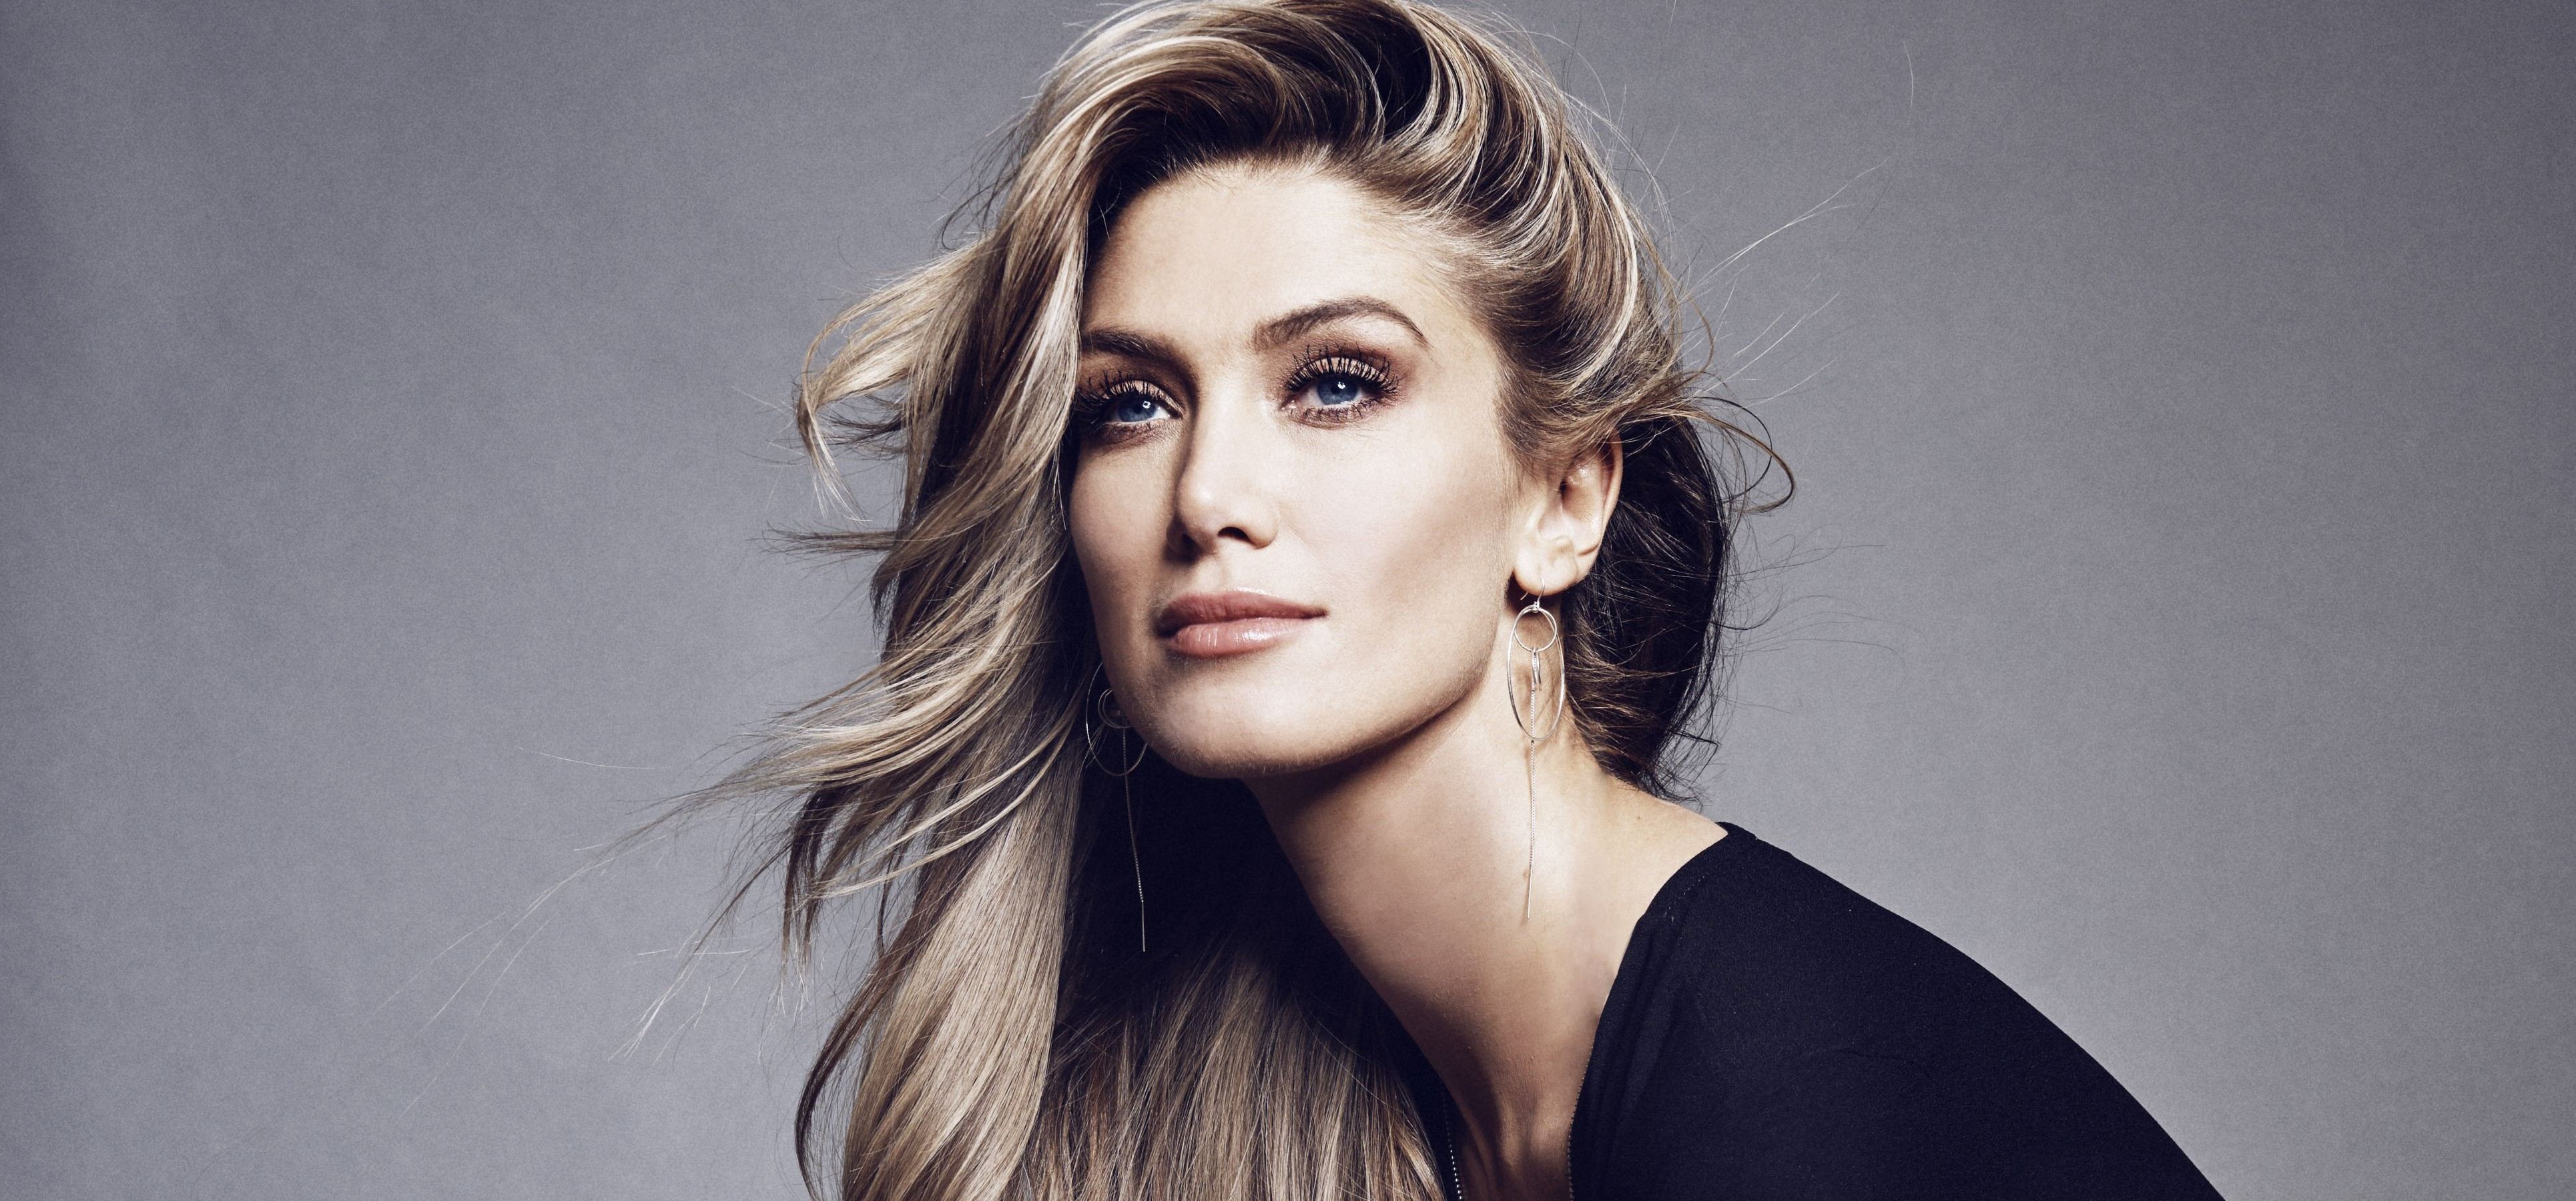 Delta Goodrem's New Single 'Dear Life' Is Available Now!